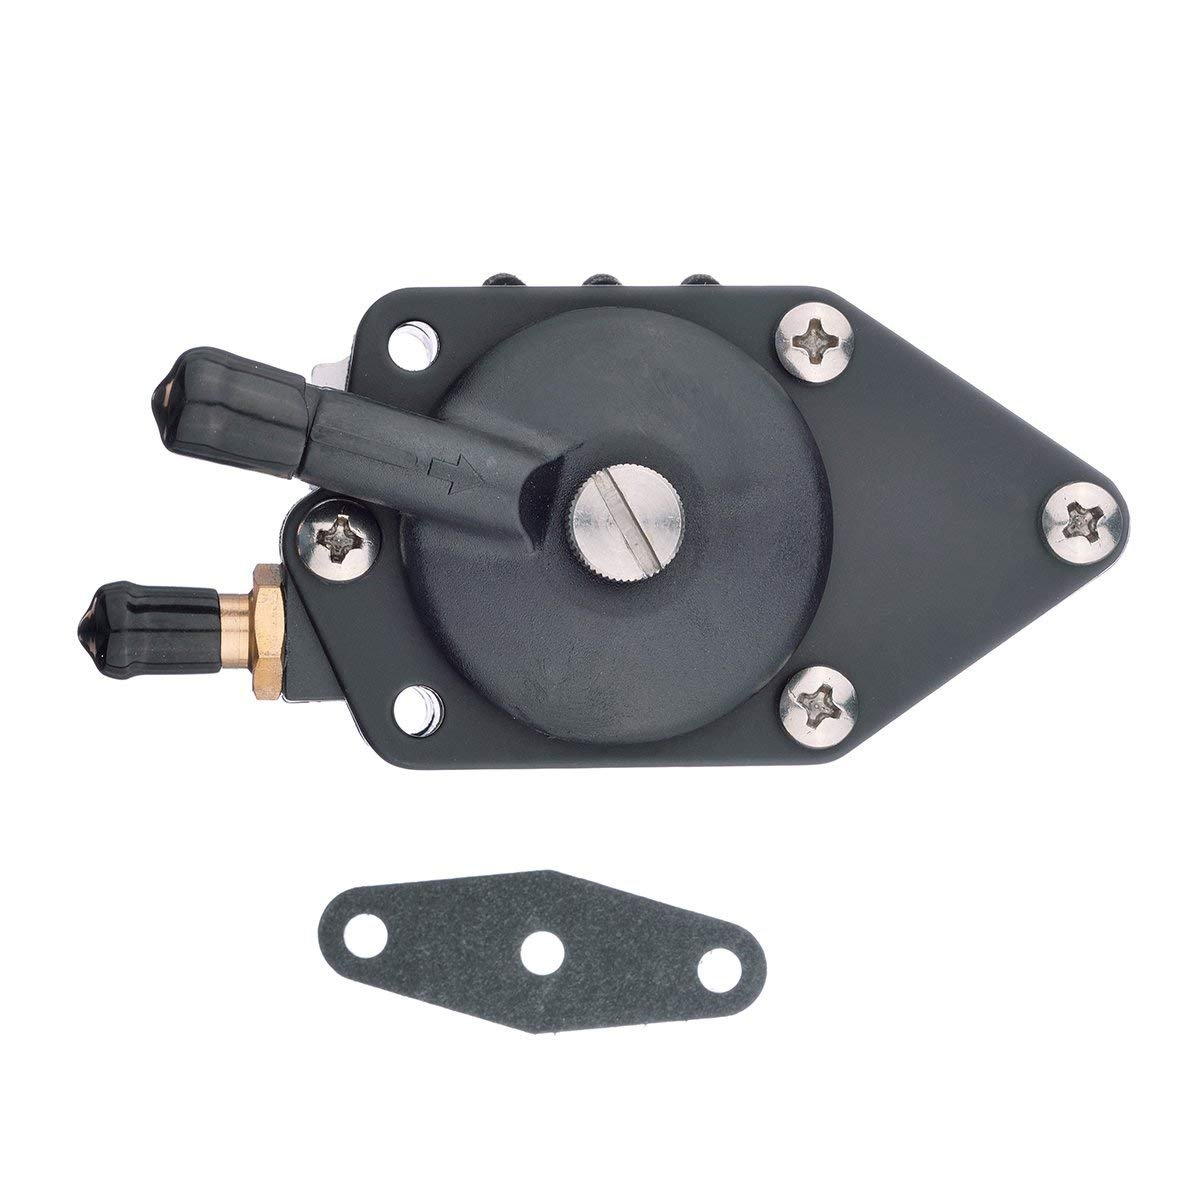 New! Outboard Fuel Pump with Gasket Fits For Johnson/Evinrude 20-140HP 48/90/115/HP 438556